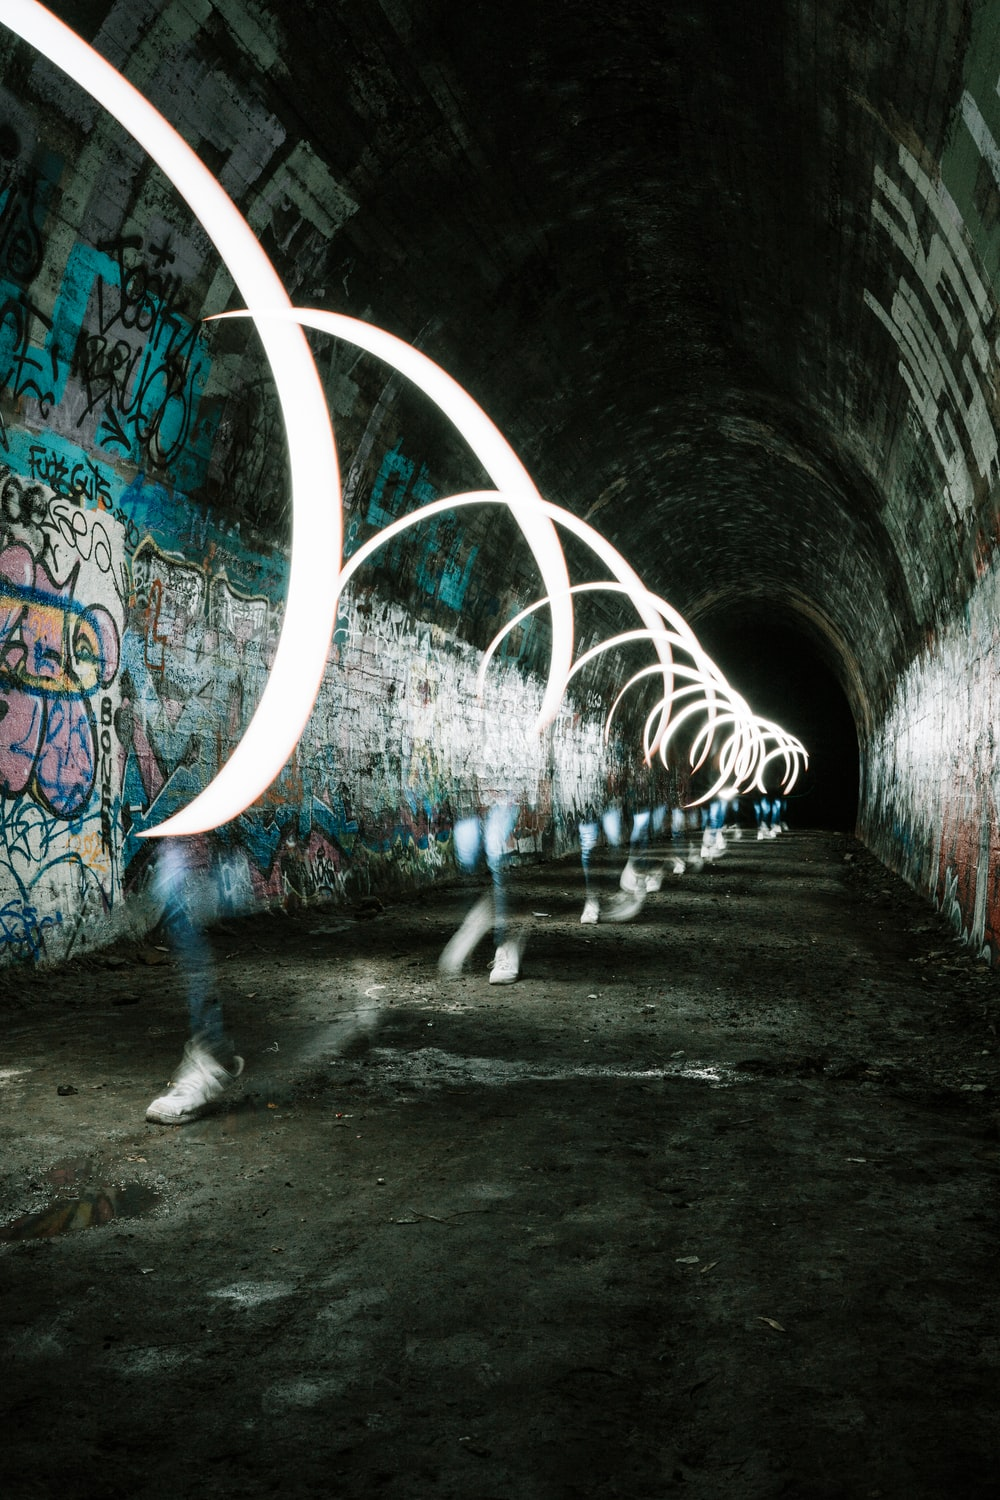 person walking on tunnel during daytime